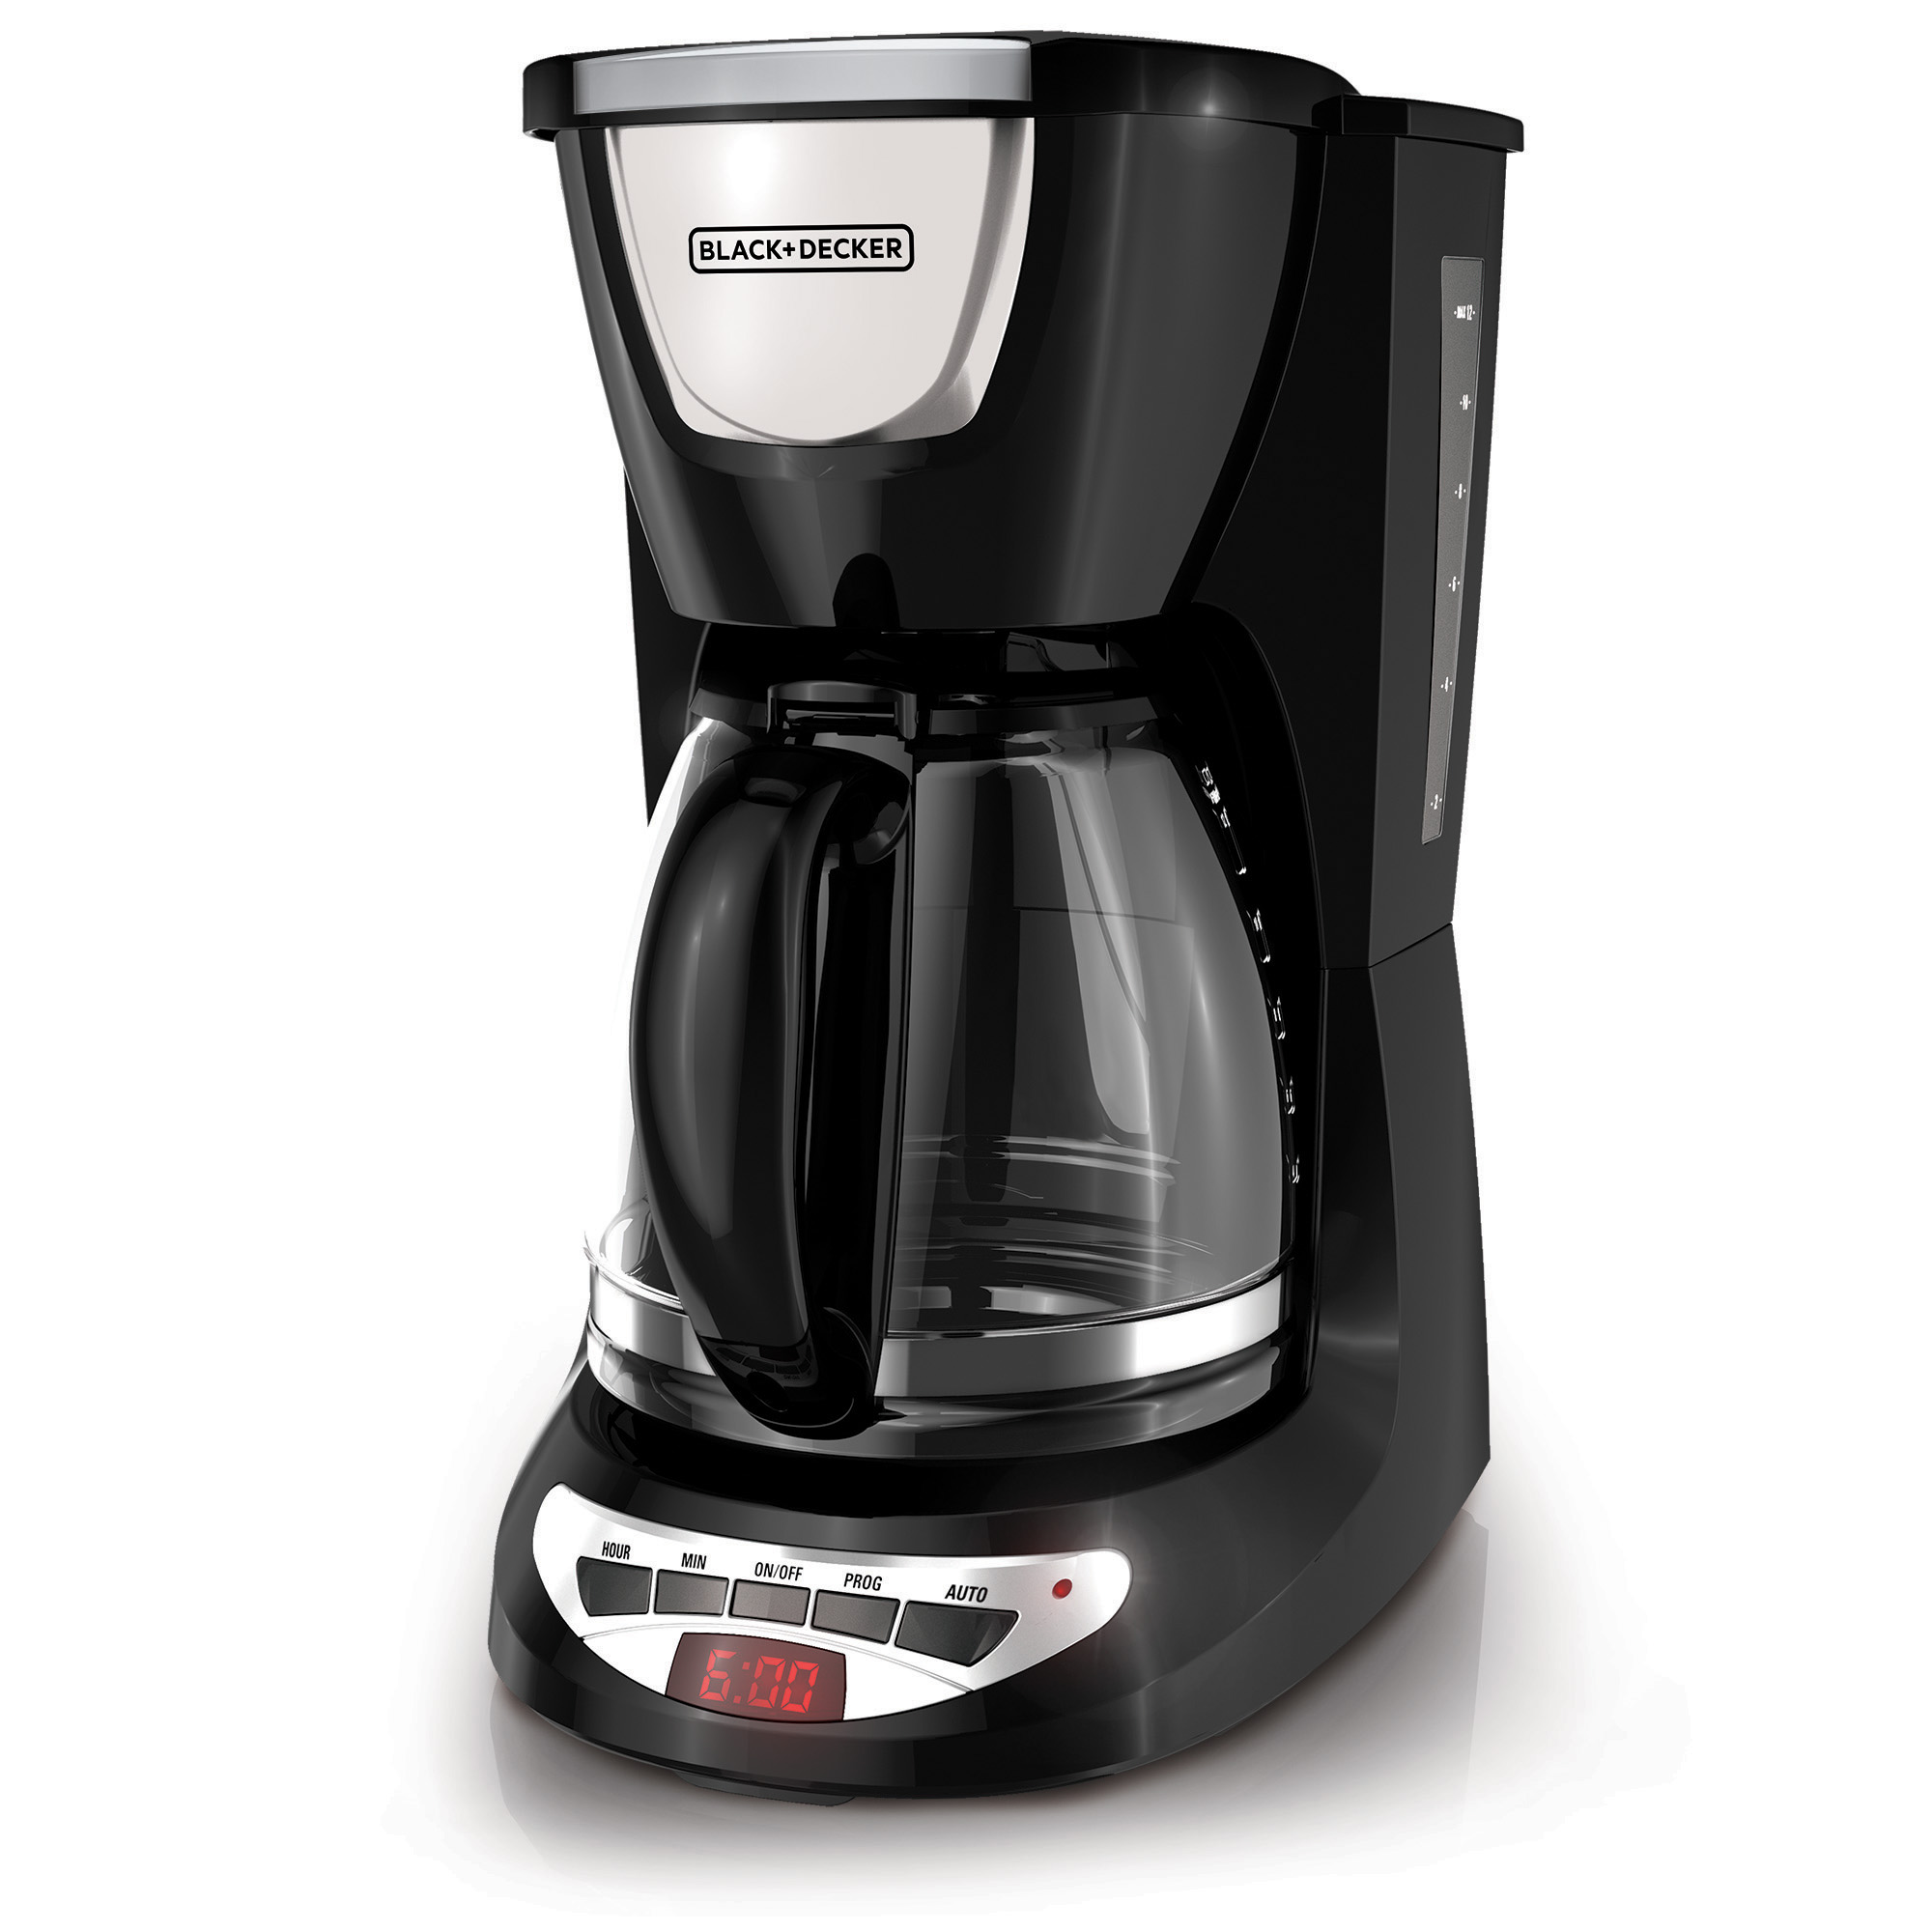 Black & Decker 12 Cup Programmable Black & Stainless Steel Coffee Maker with Glass Carafe, 1 Each